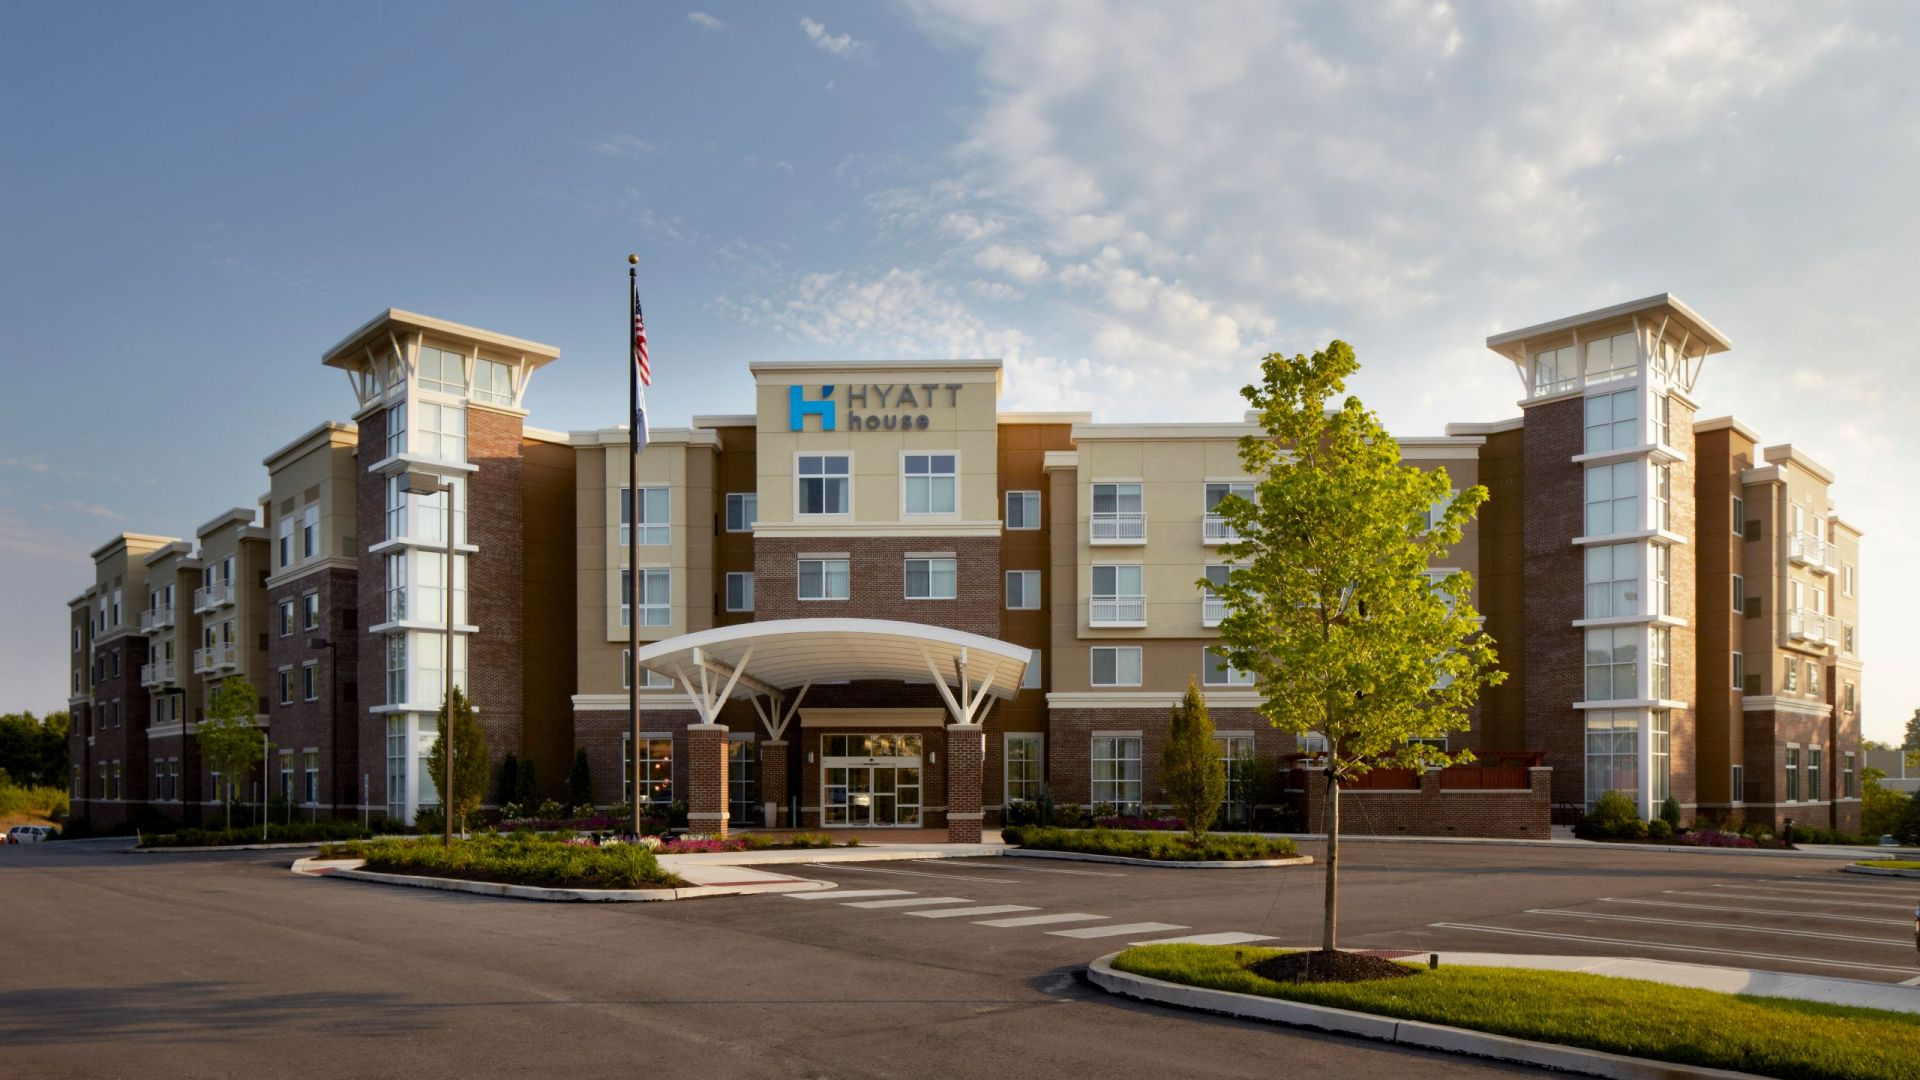 King of Prussia Pennsylvania Hotels – Hyatt House Hotel Philadelphia/King of Prussia